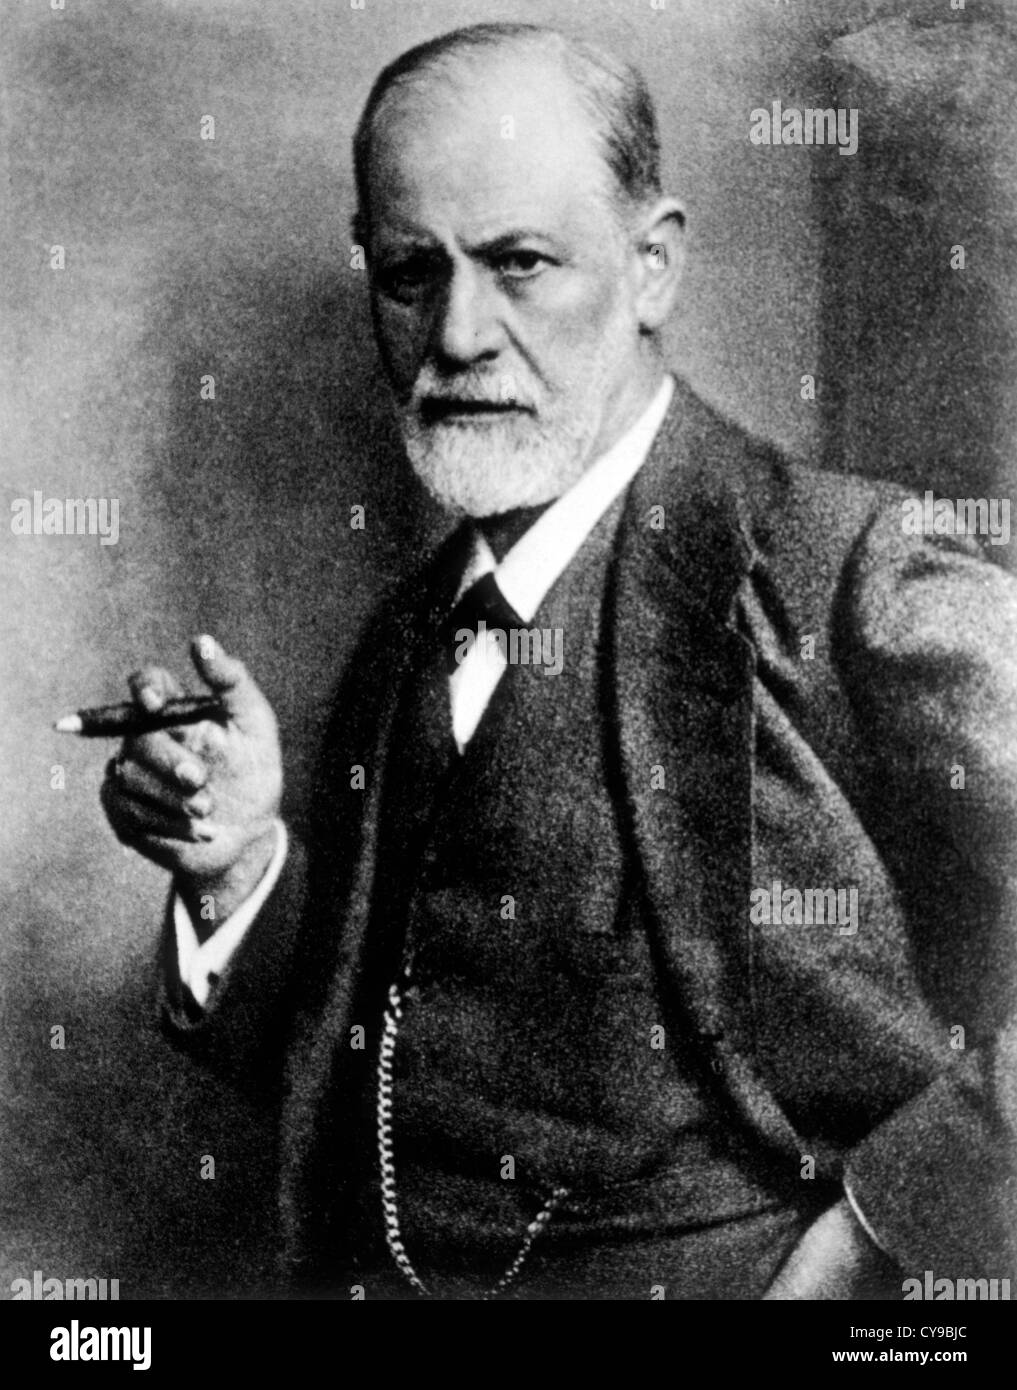 sigmund freud 5 essay Freud approved the overall editorial plan, specific renderings of key words and phrases, and the addition of valuable notes, from bibliographical and explanatory.